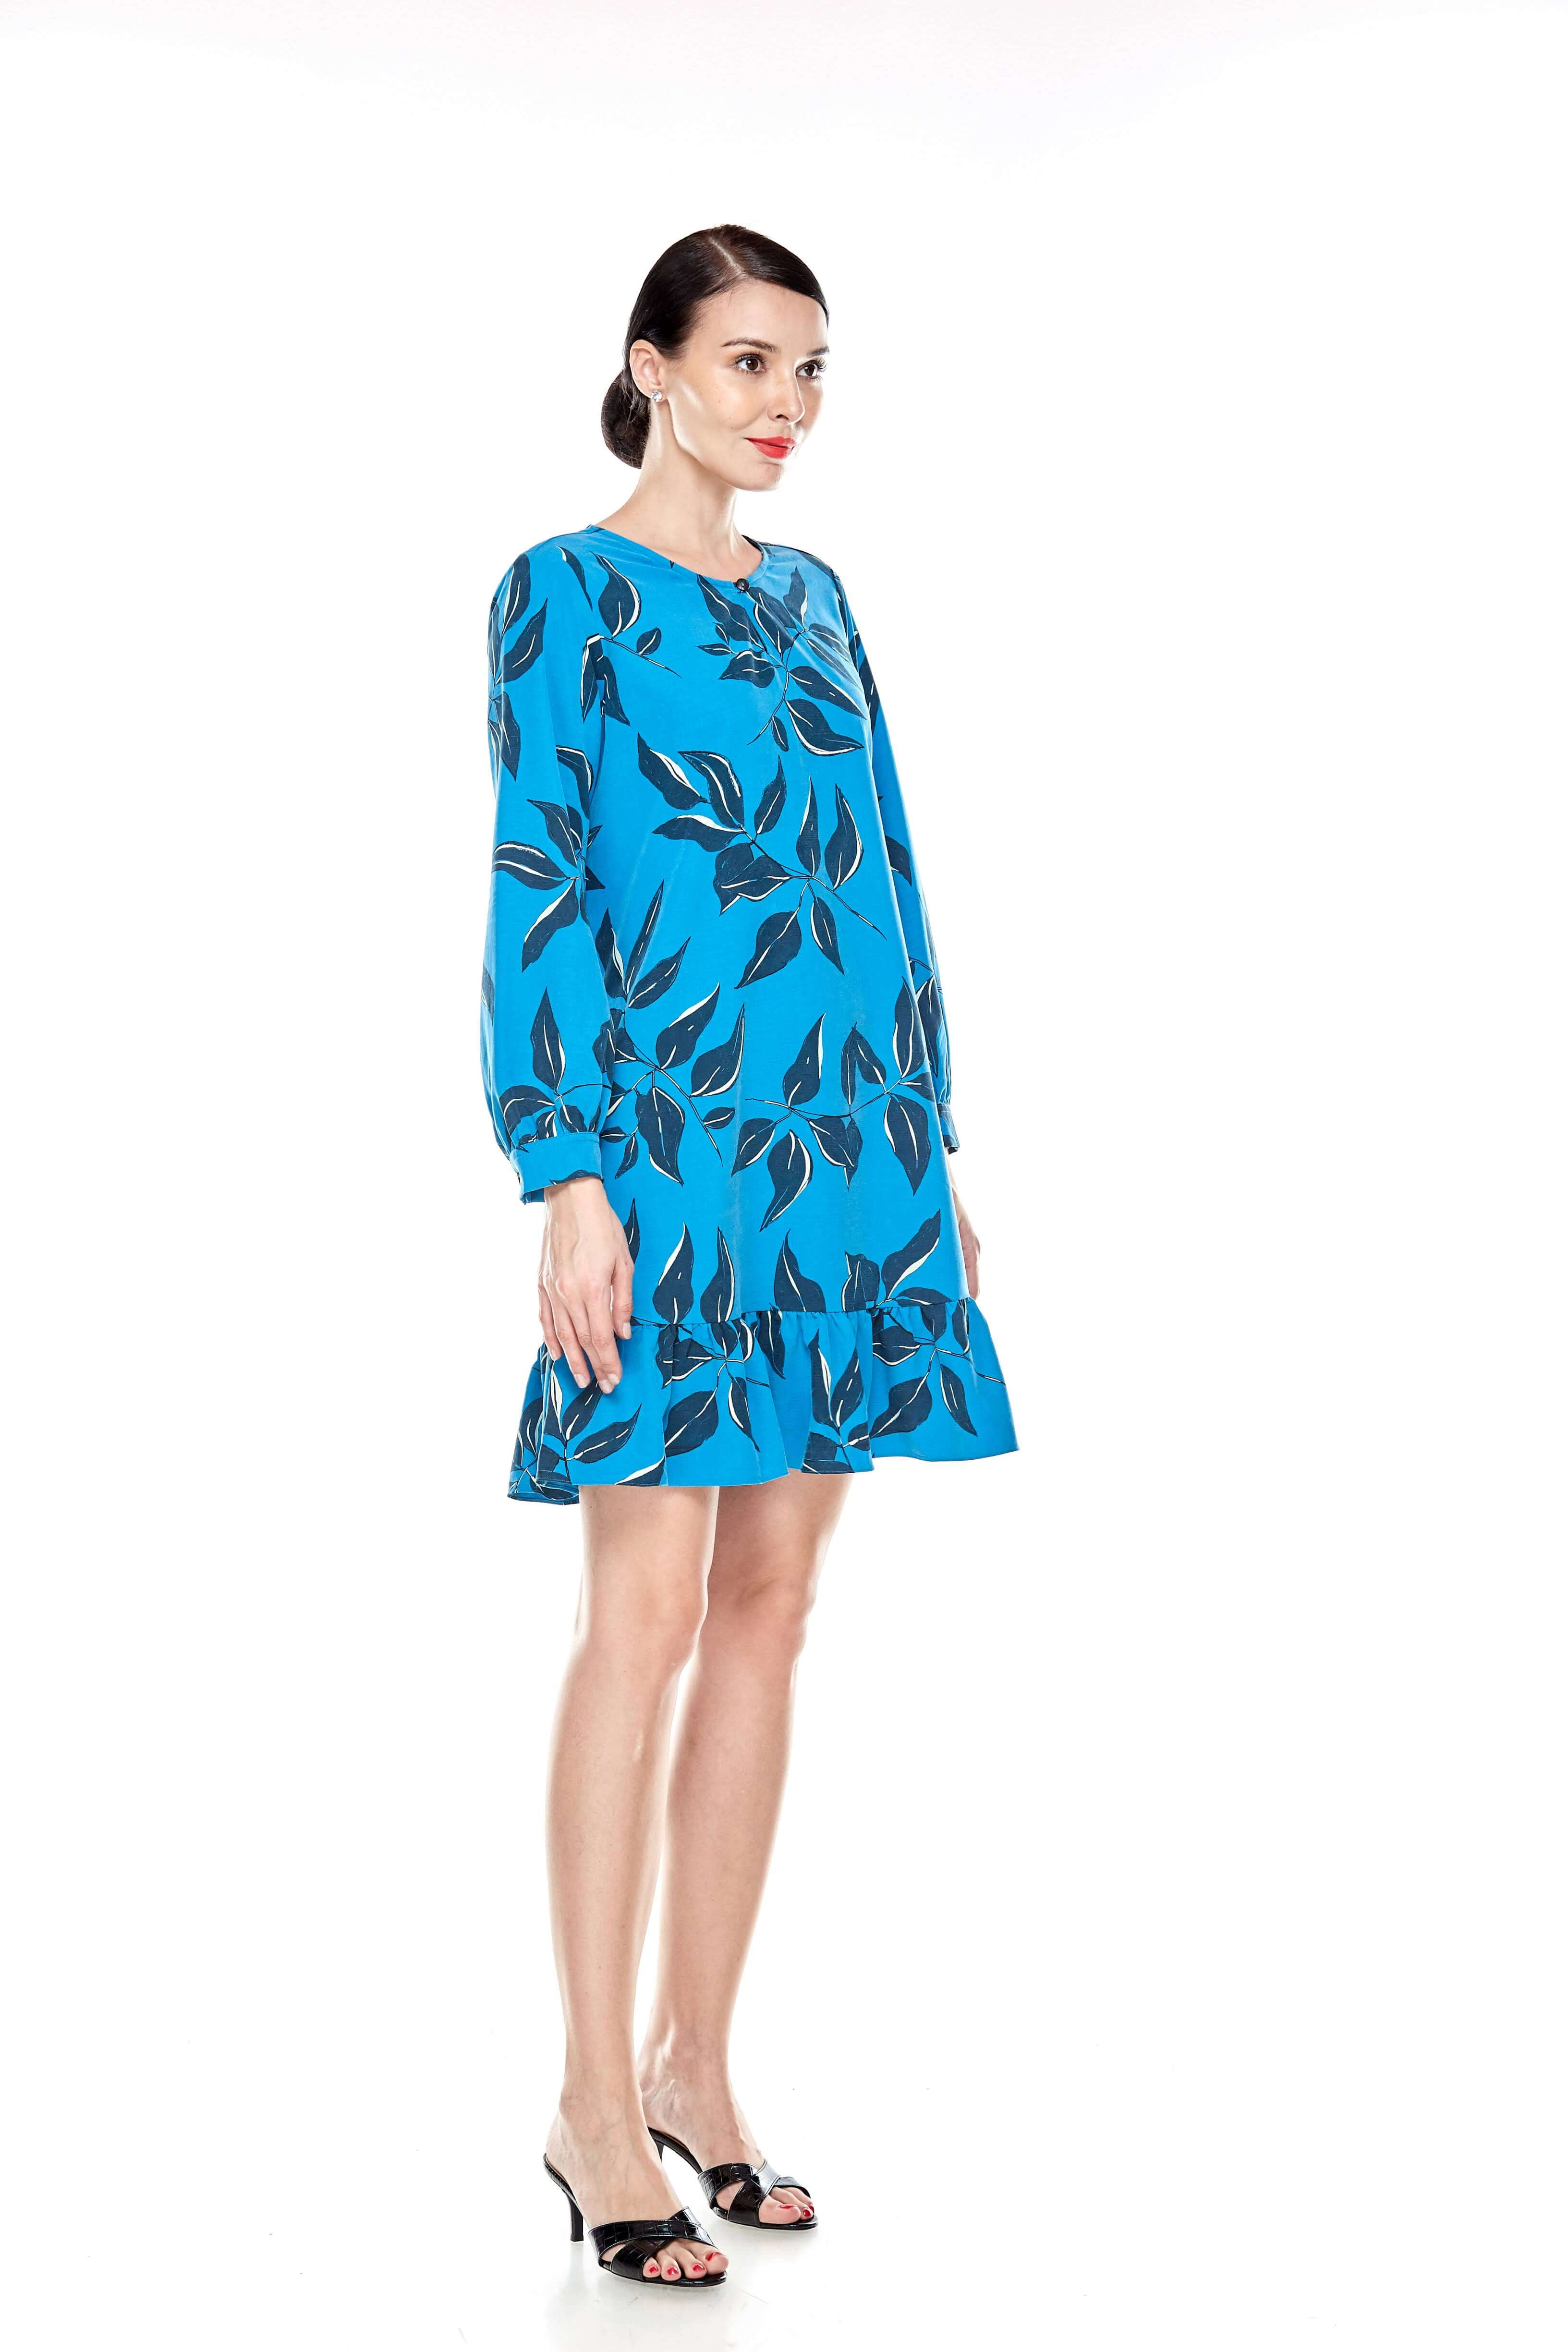 Mosaic Blue Printed Tunic With Bow Sleeves (7)